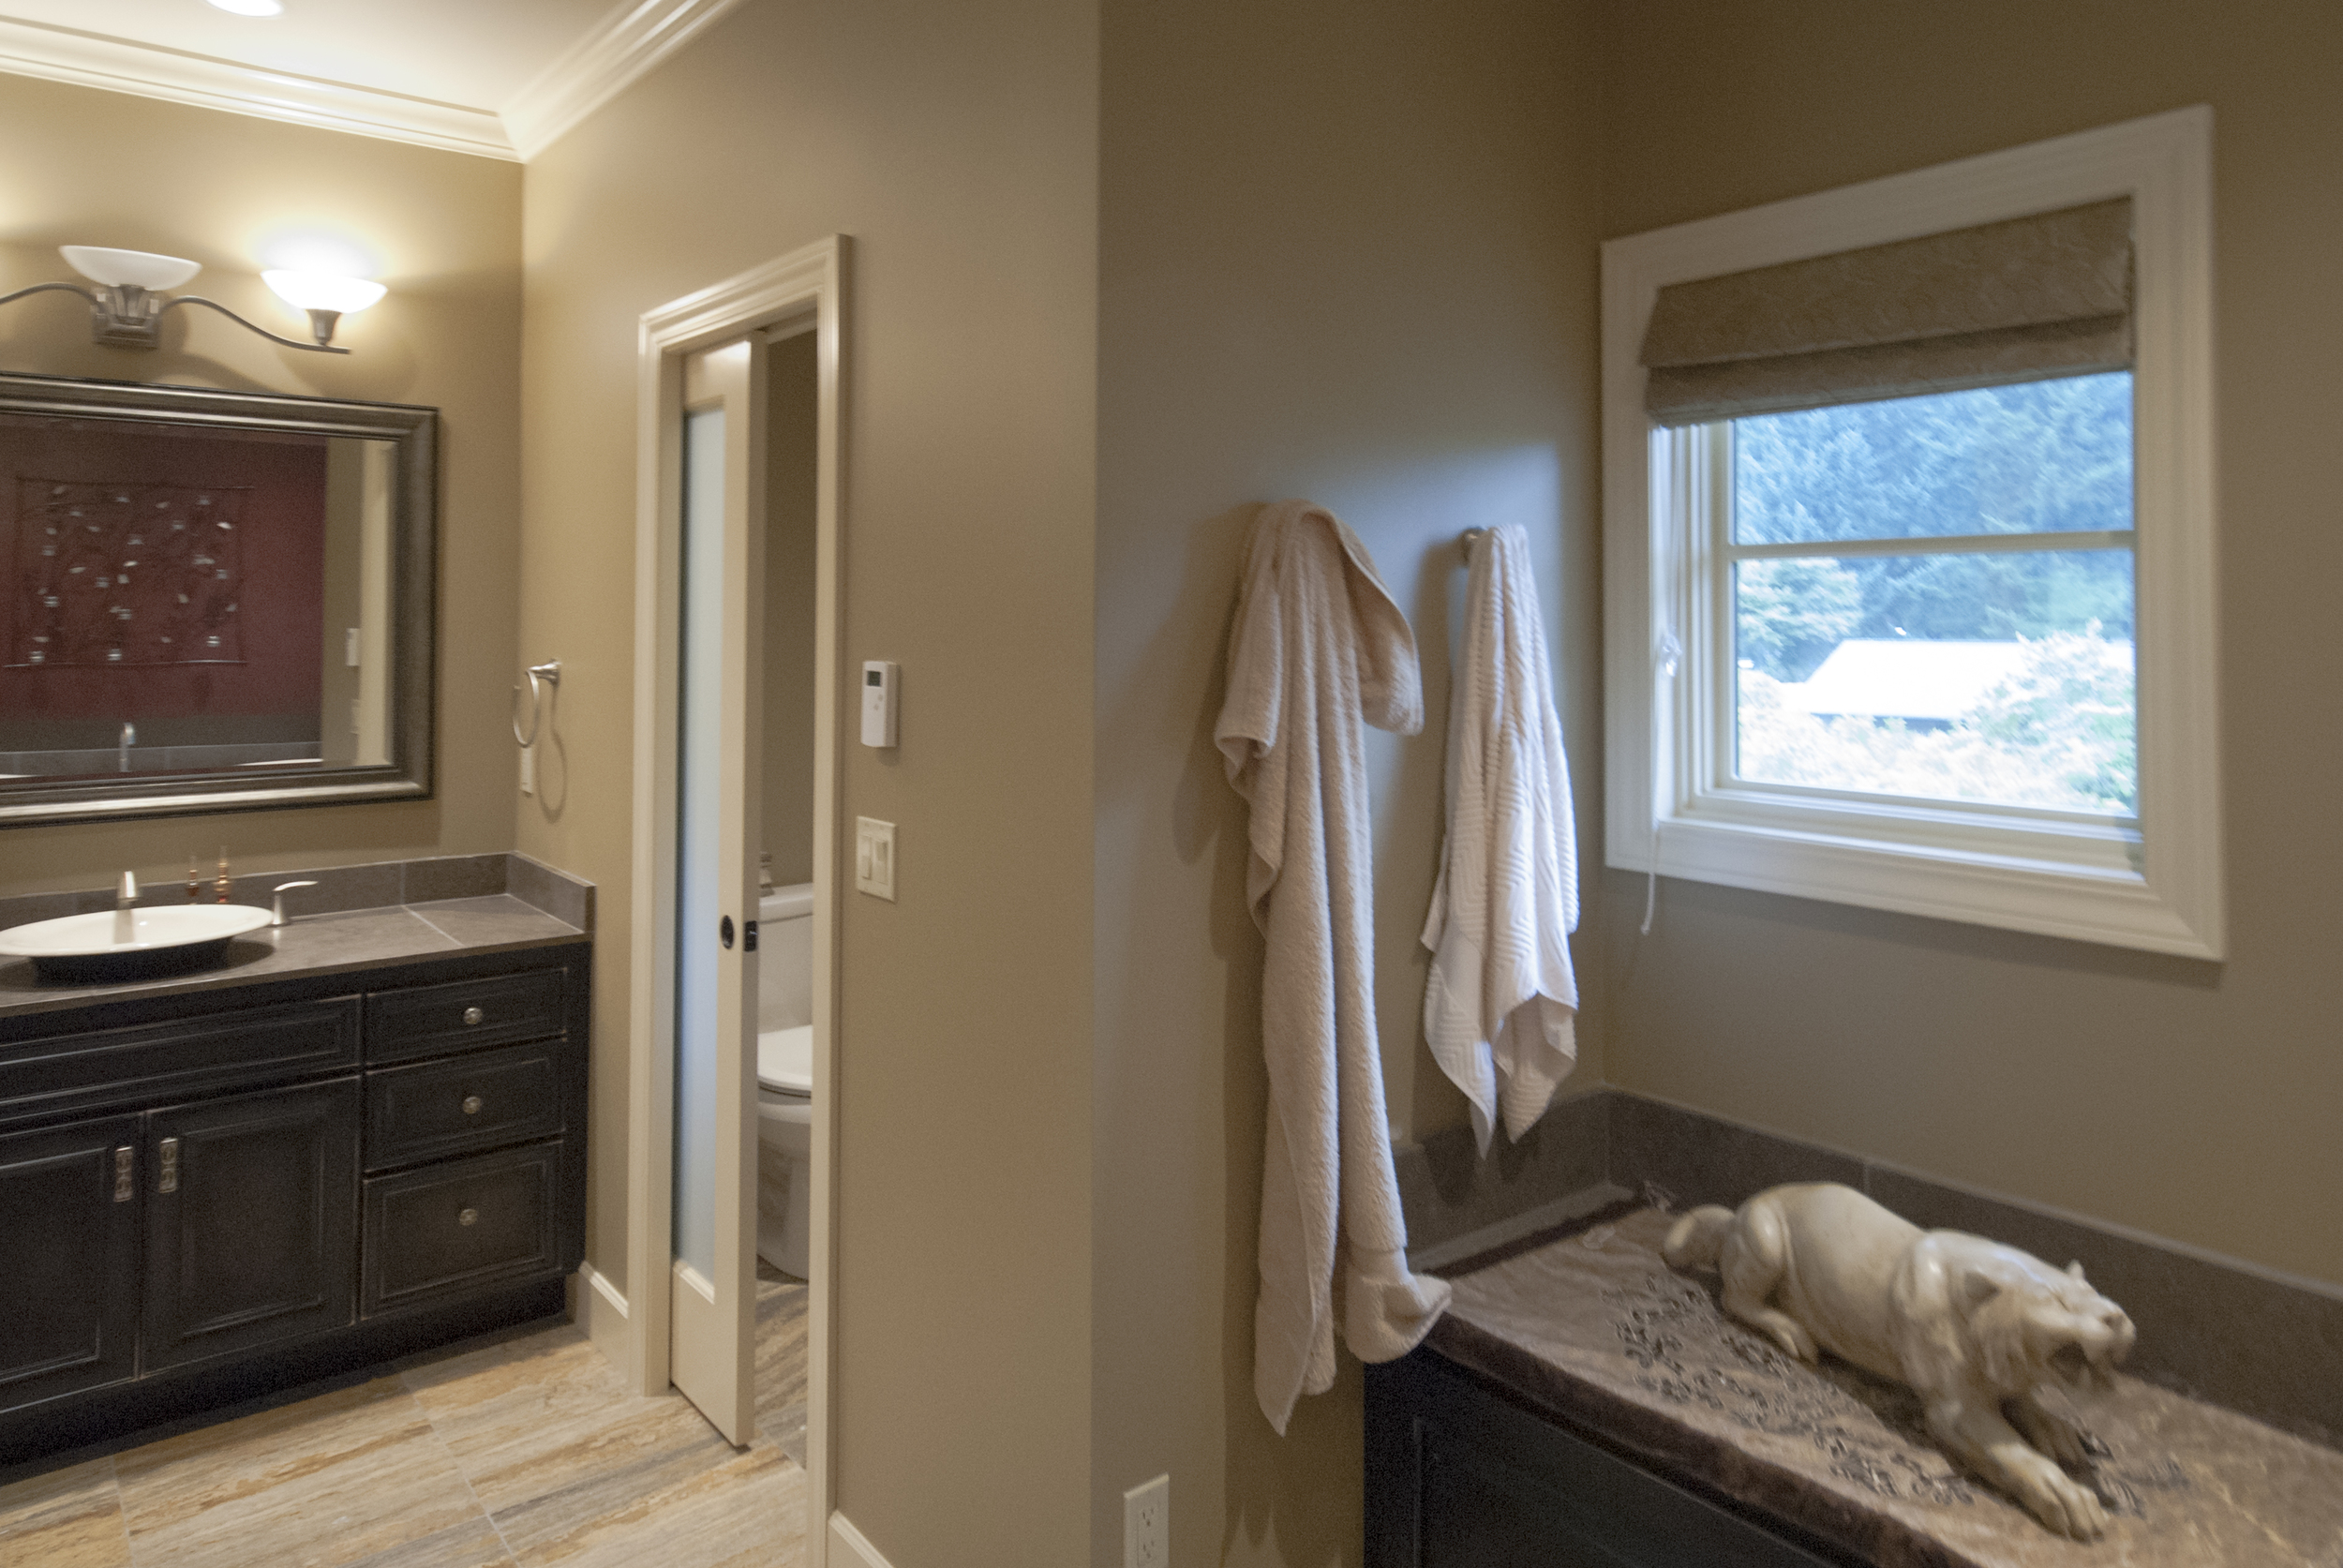 Nothing can beat a day at the spa and all the better is everyday is a day at the spa - this was our design directive.  The master bath is expansive covering about 250 square feet.